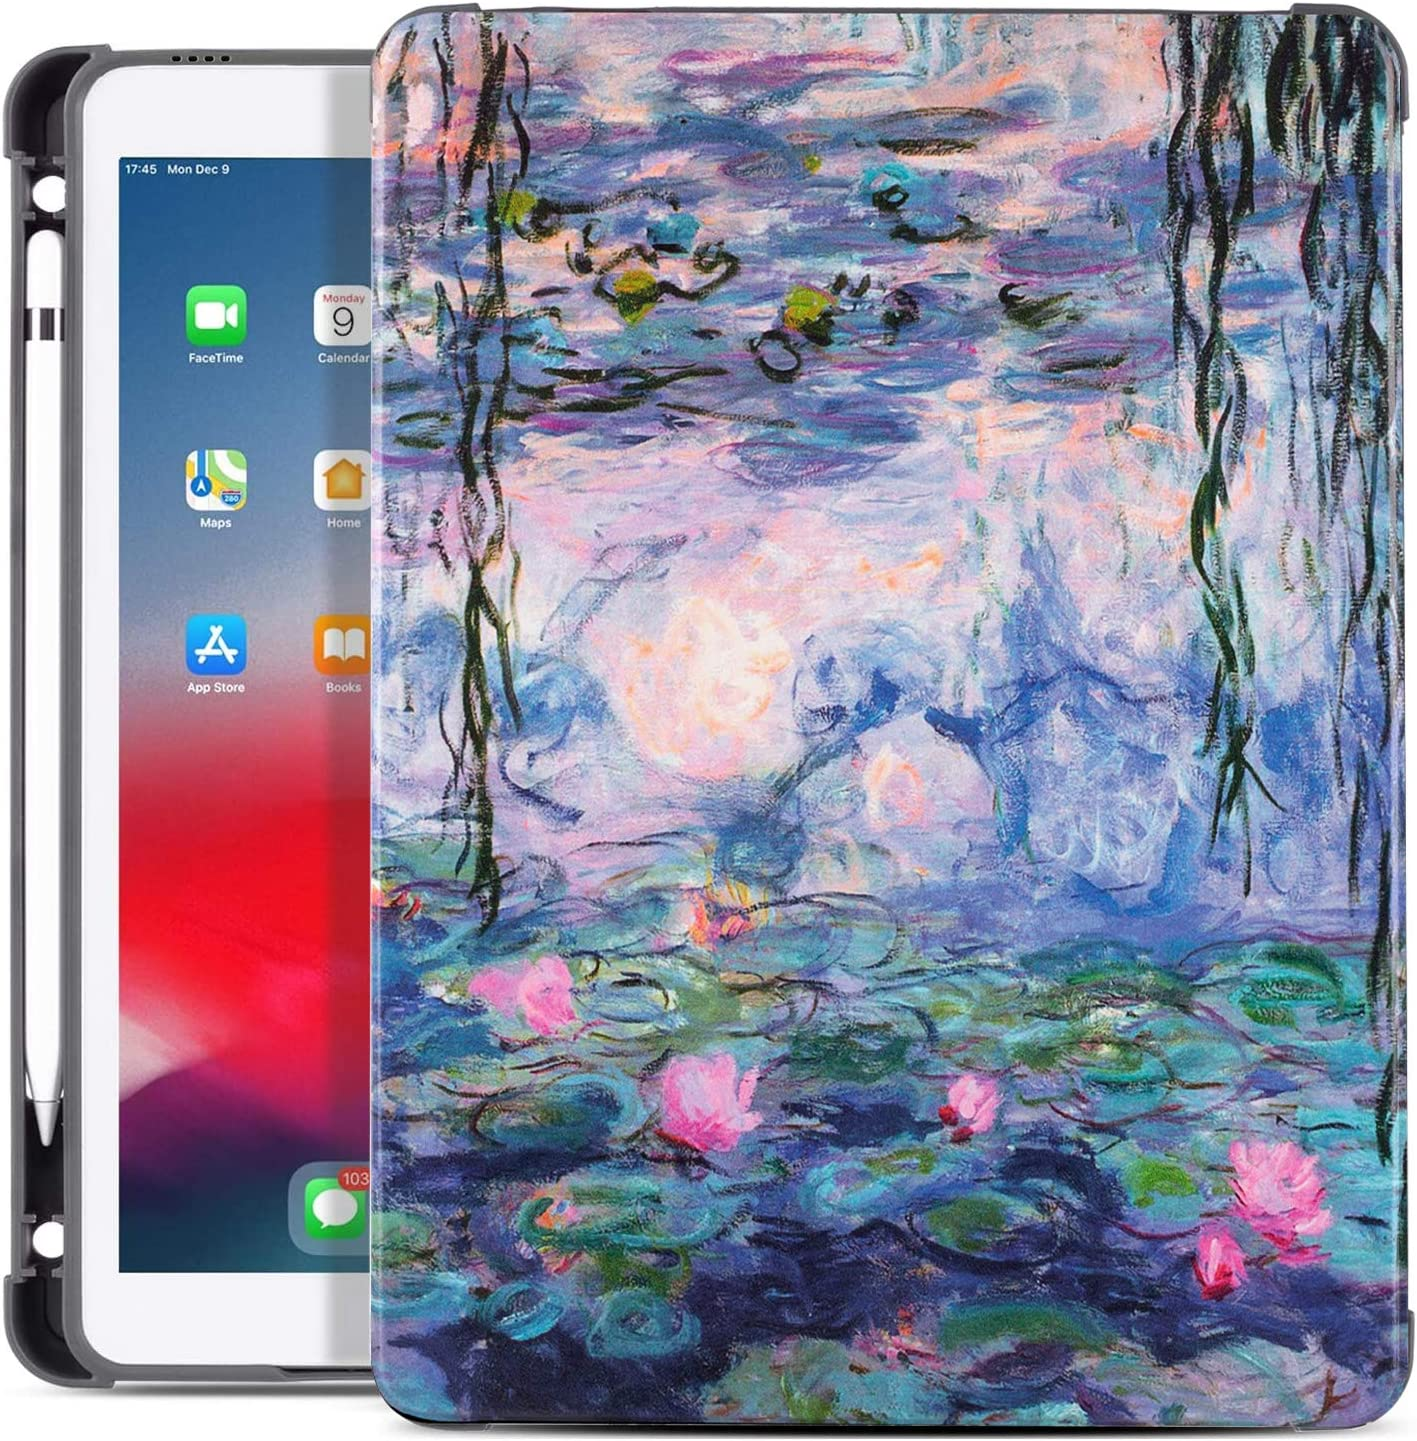 Drodalala 7th Generation ipad case/8th Generation ipad case/iPad Air case/10.5-inch iPad Pro case, Soft TPU Full Body Protection Leather Stand 10.2 inch iPad Case with Pencil Pen Holder (Lotus Flower)